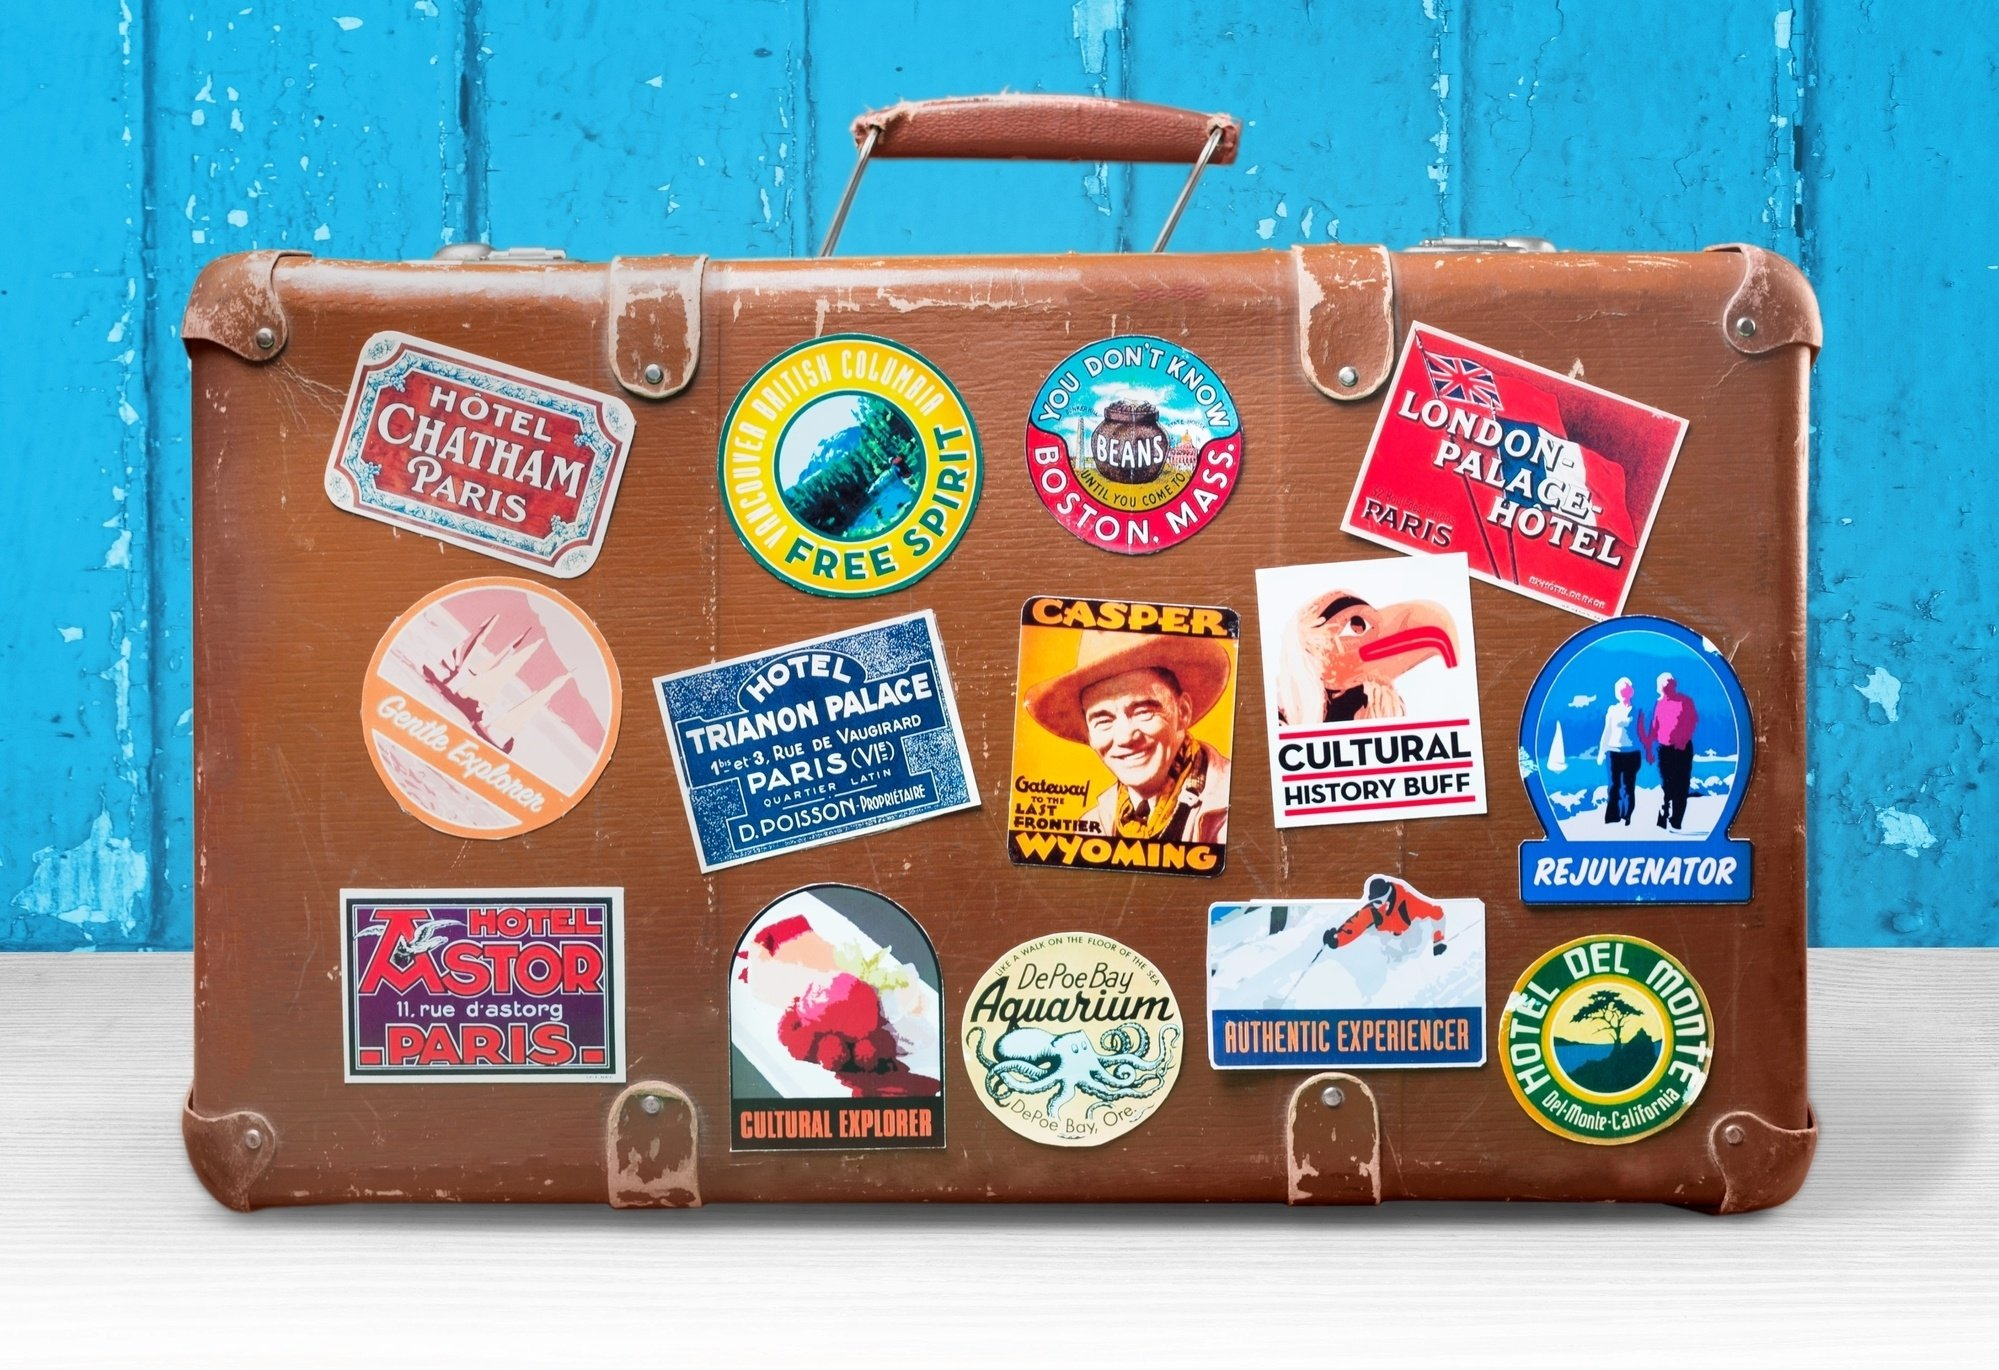 Add flair to your luggage to make it stand out from the rest